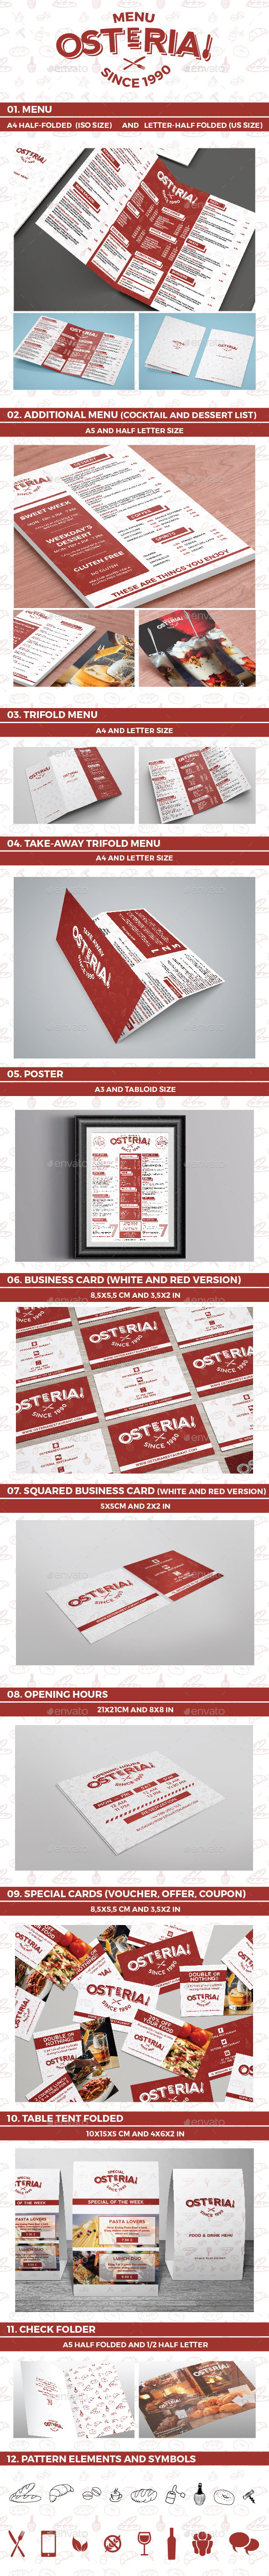 Osteria! Multi-Menu Template - Food Menus Print Templates